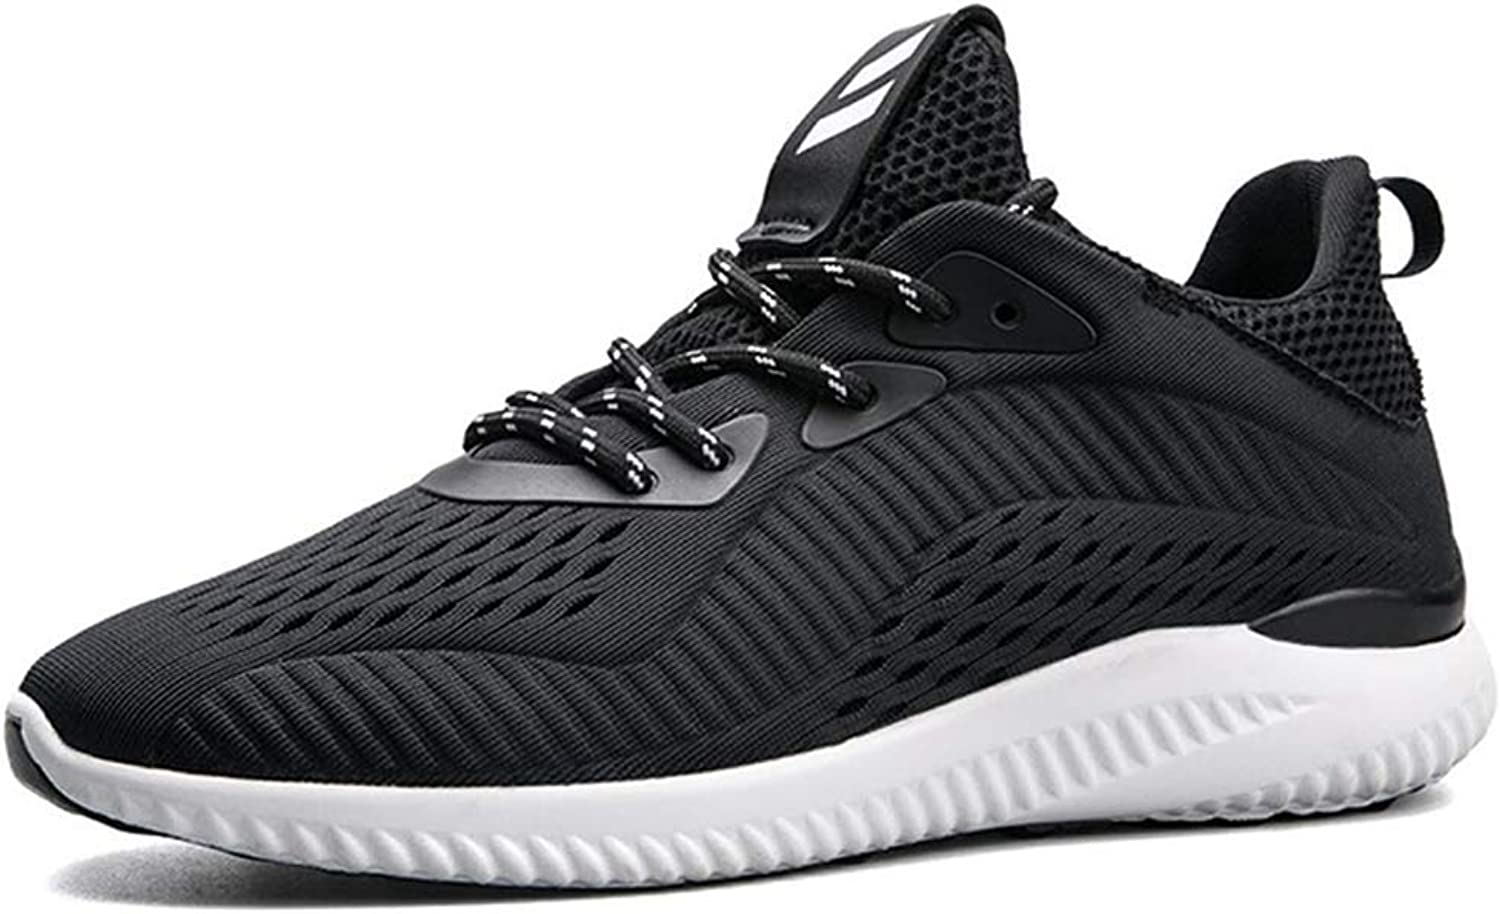 Outdoor Sneakers for Mens Flying Woven shoes Casual Sneakers Men's Outdoor Running Mesh Cloth Comfortable and Breathable (color   Black, Size   44)